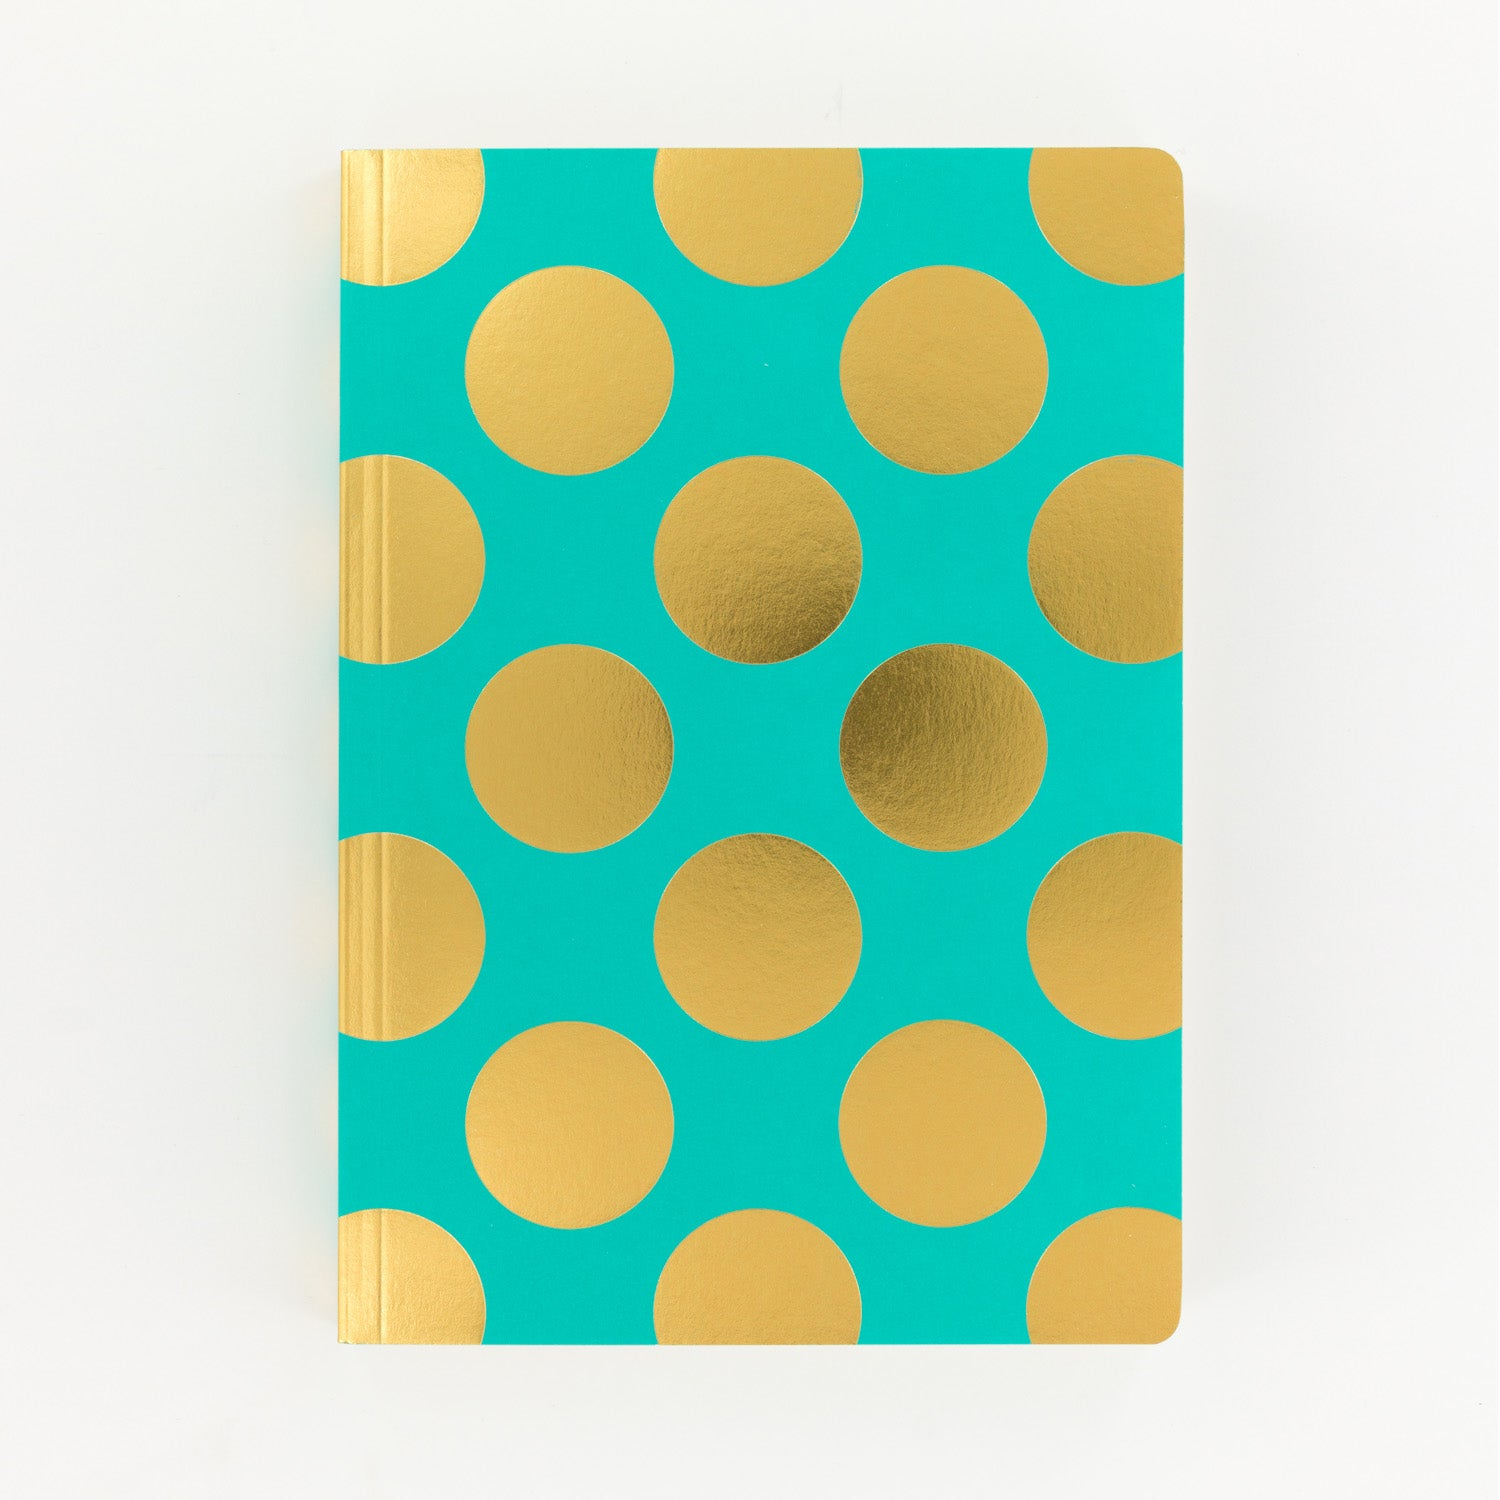 Shimmer Teal A5 Notebook Large Polka - MissieMay